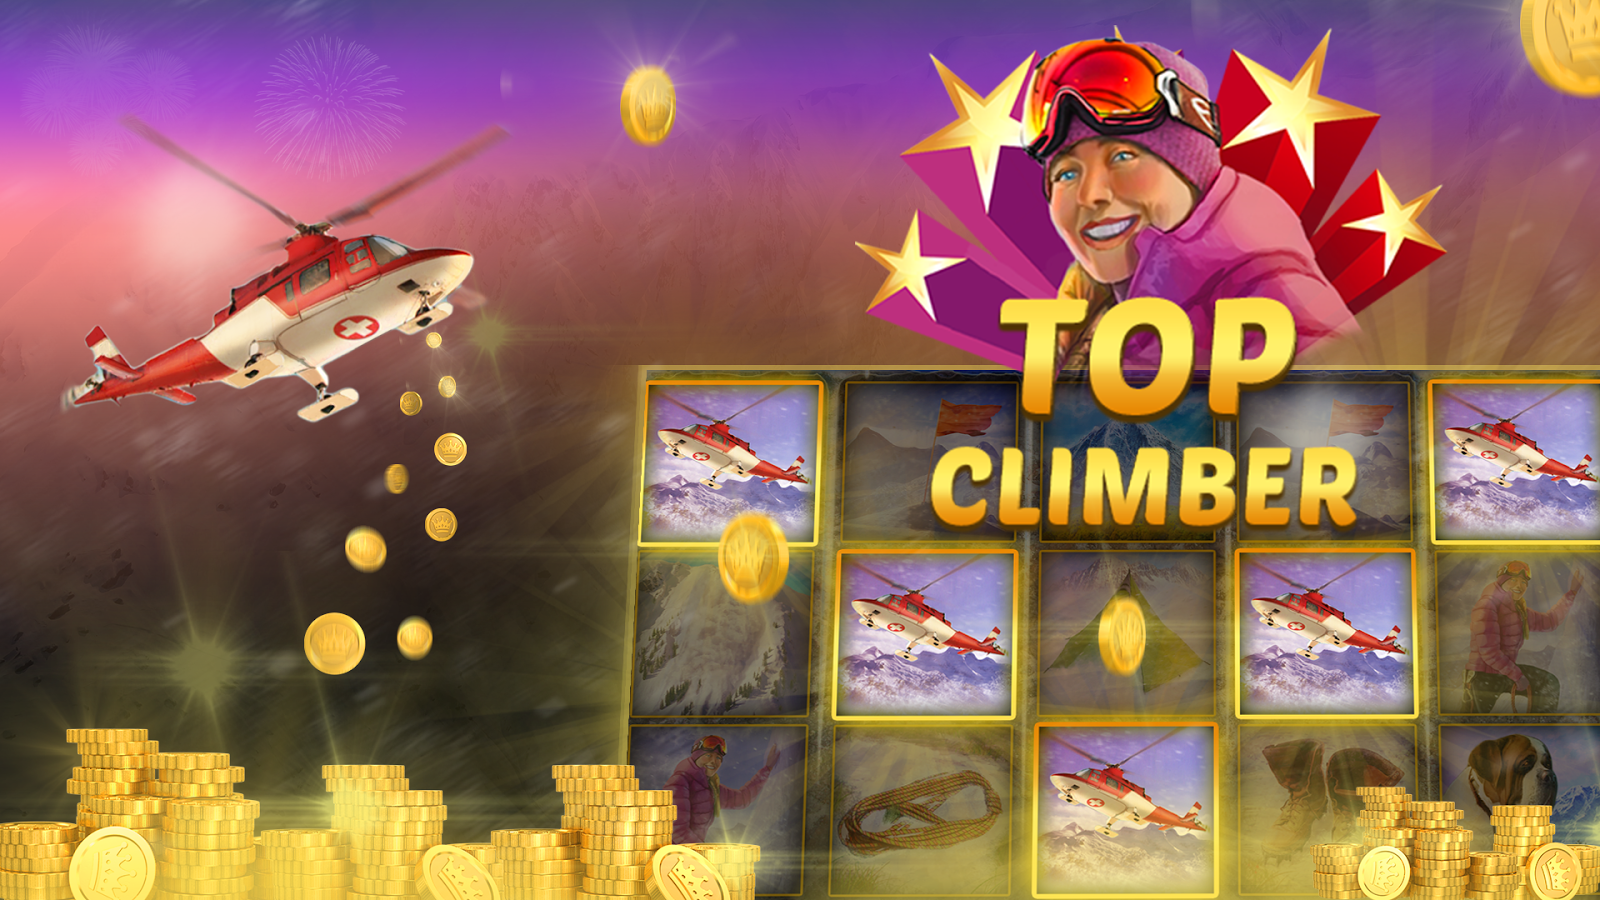 Top Climber - Slot Machine Game- screenshot